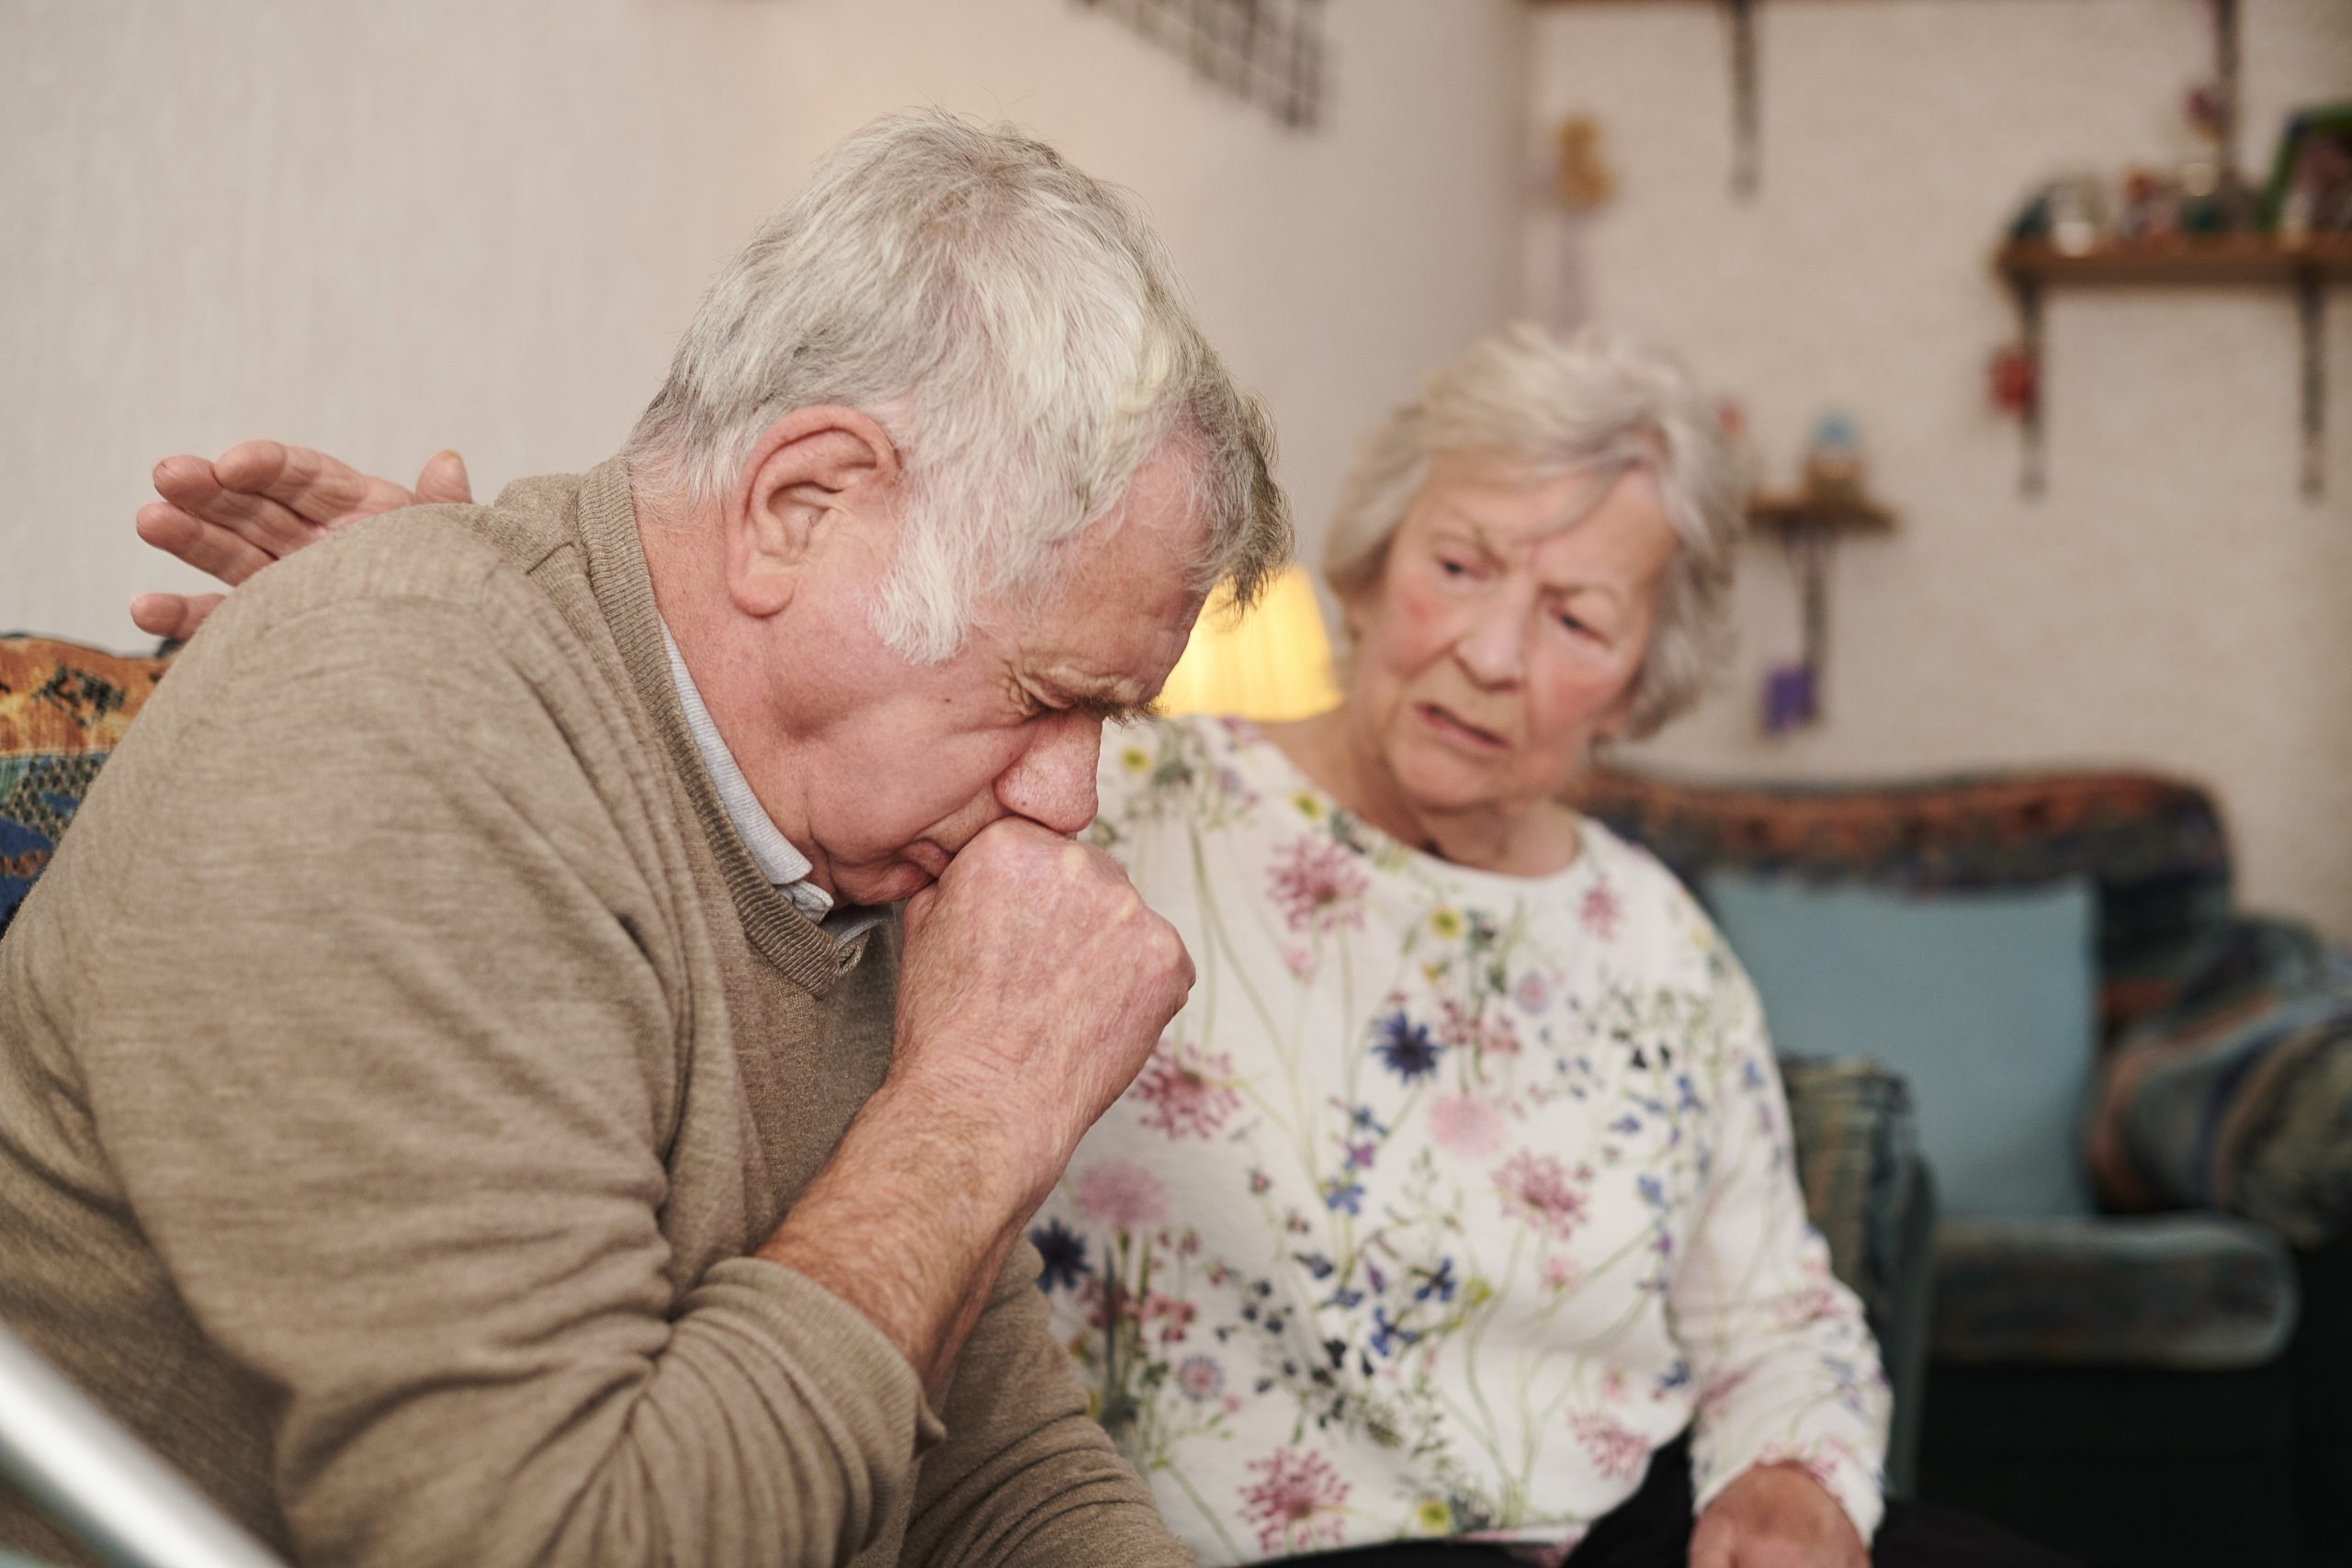 Photograph of an older couple in a living room. The man is coughing as the woman looks at him with concern.